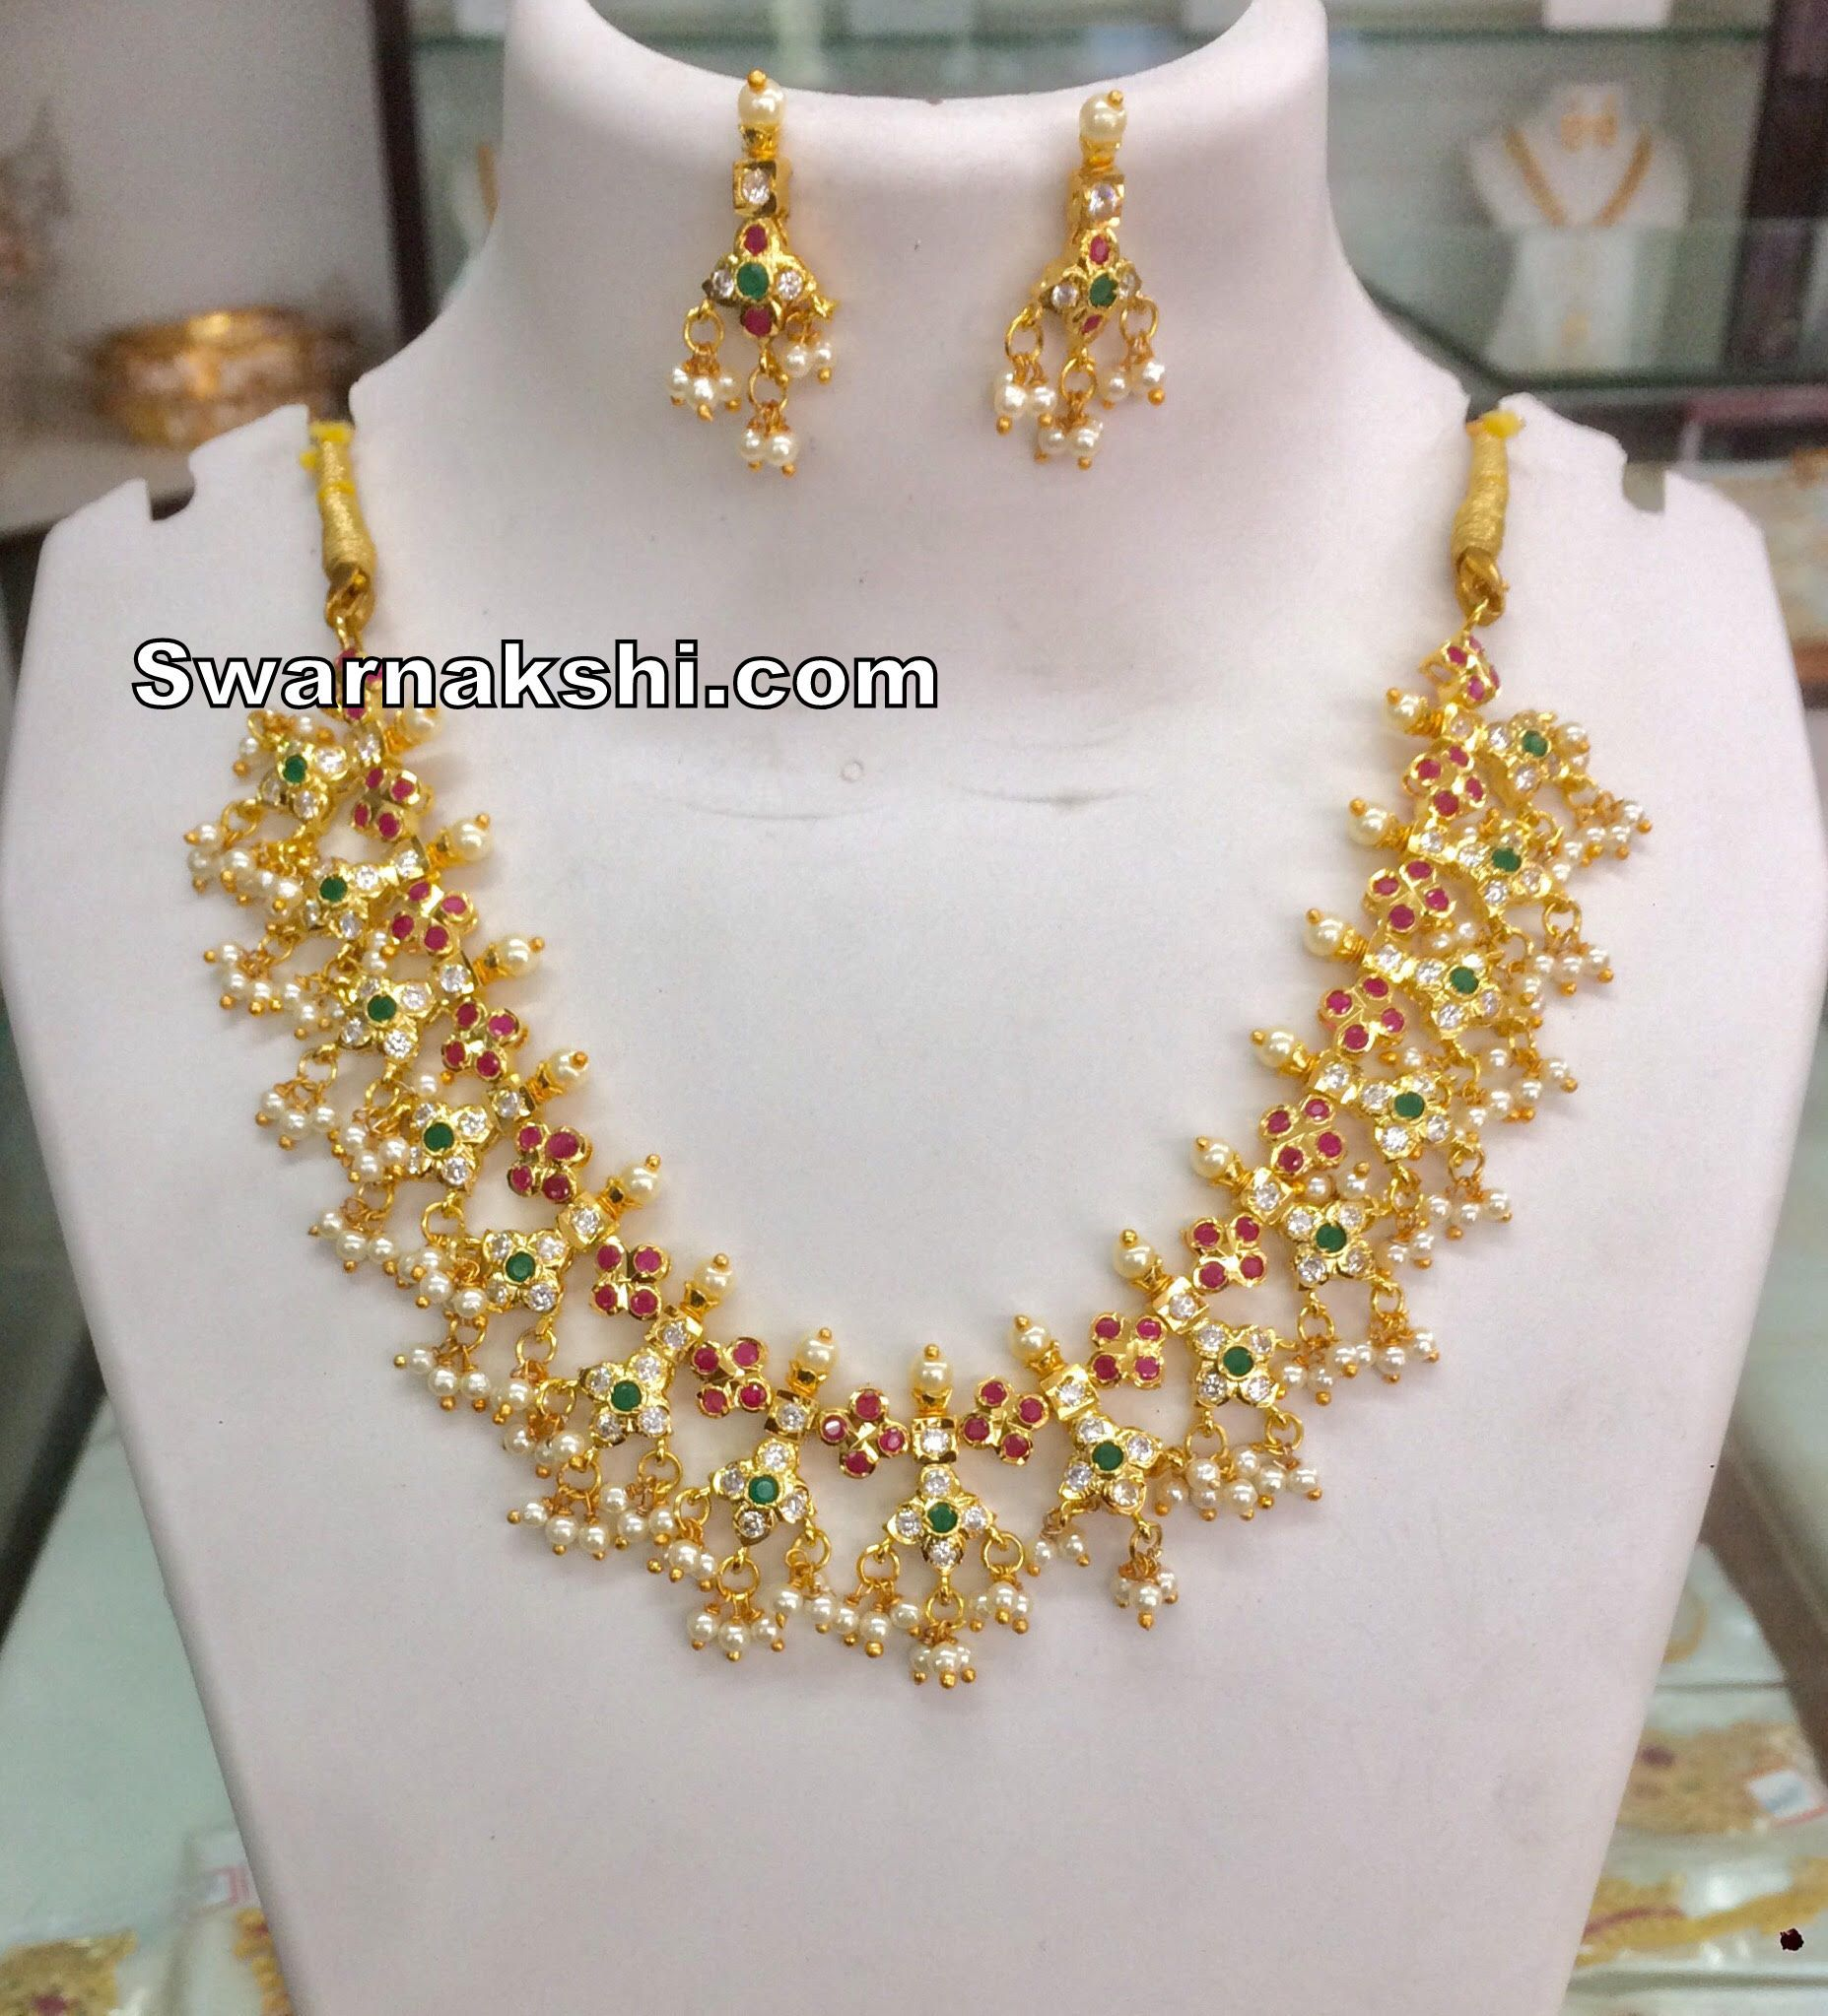 bd9c9b4846 1 gram gold necklace oval model collection | Jewllery | Jewelry, Gold  wedding jewelry, Gold jewelry